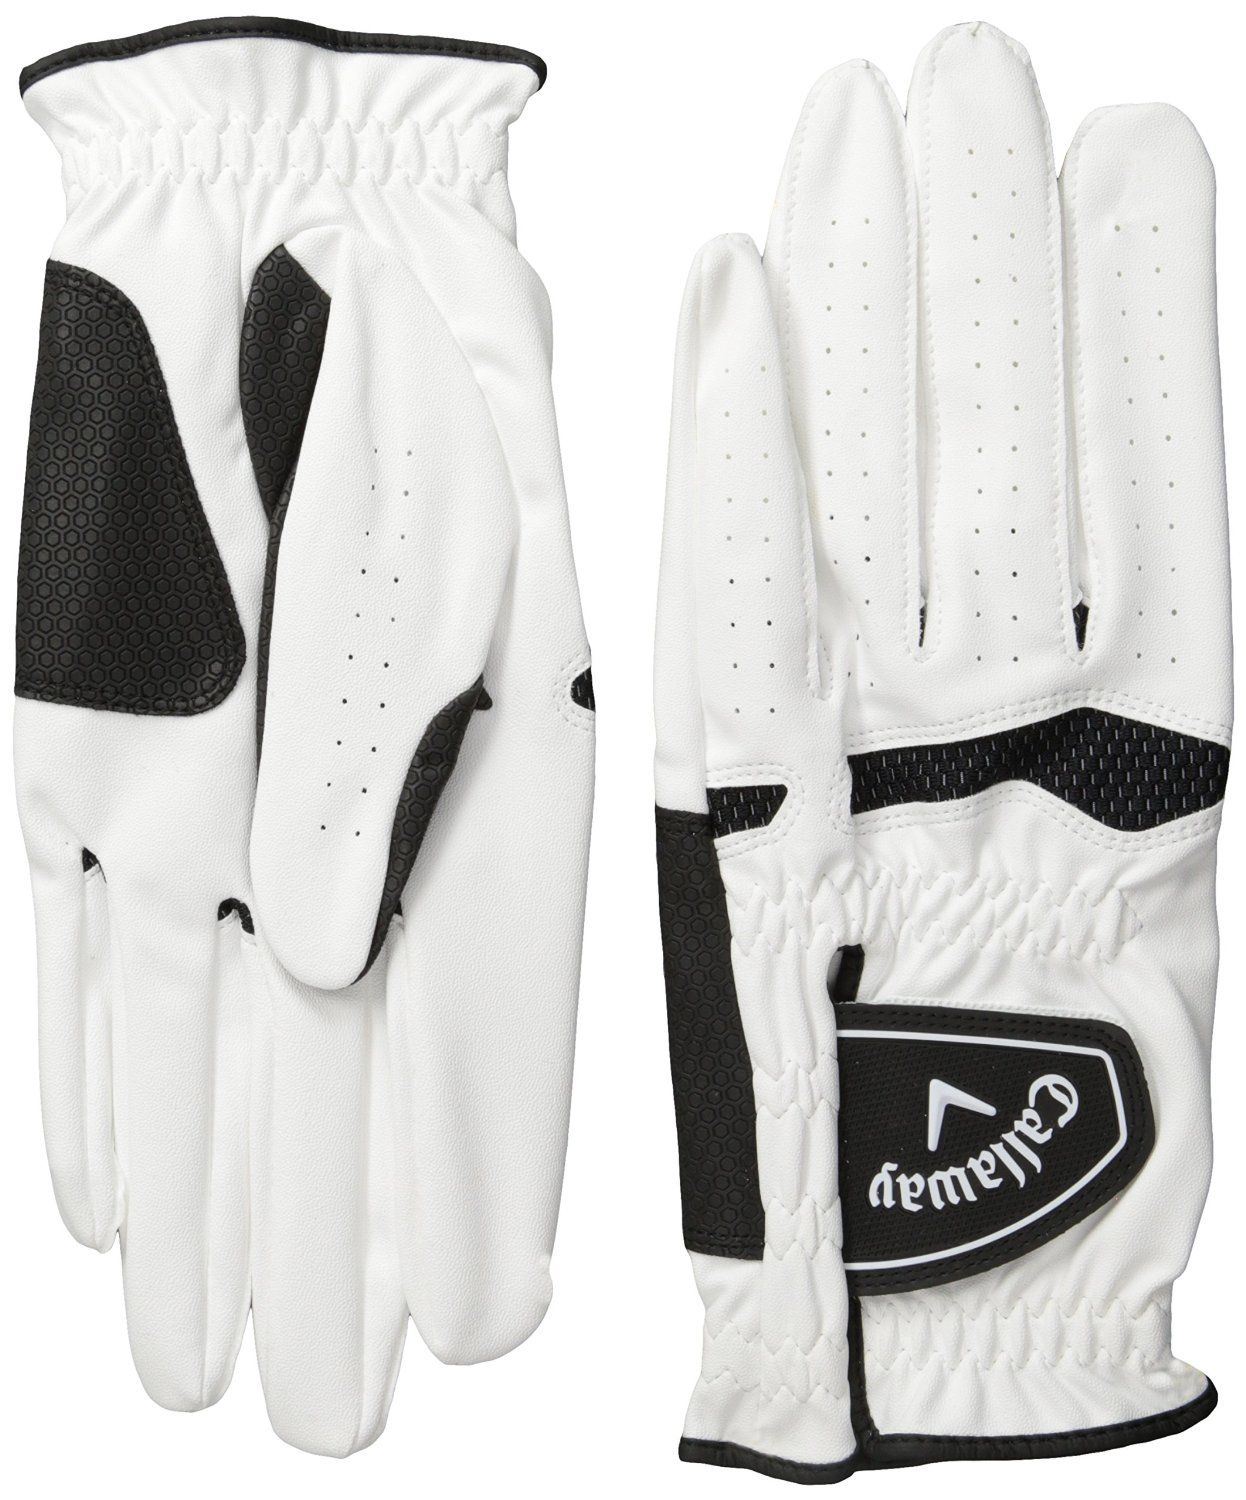 Hugedomains Com Shop For Over 300 000 Premium Domains Golf Fashion Golf Outfit Golf Gloves